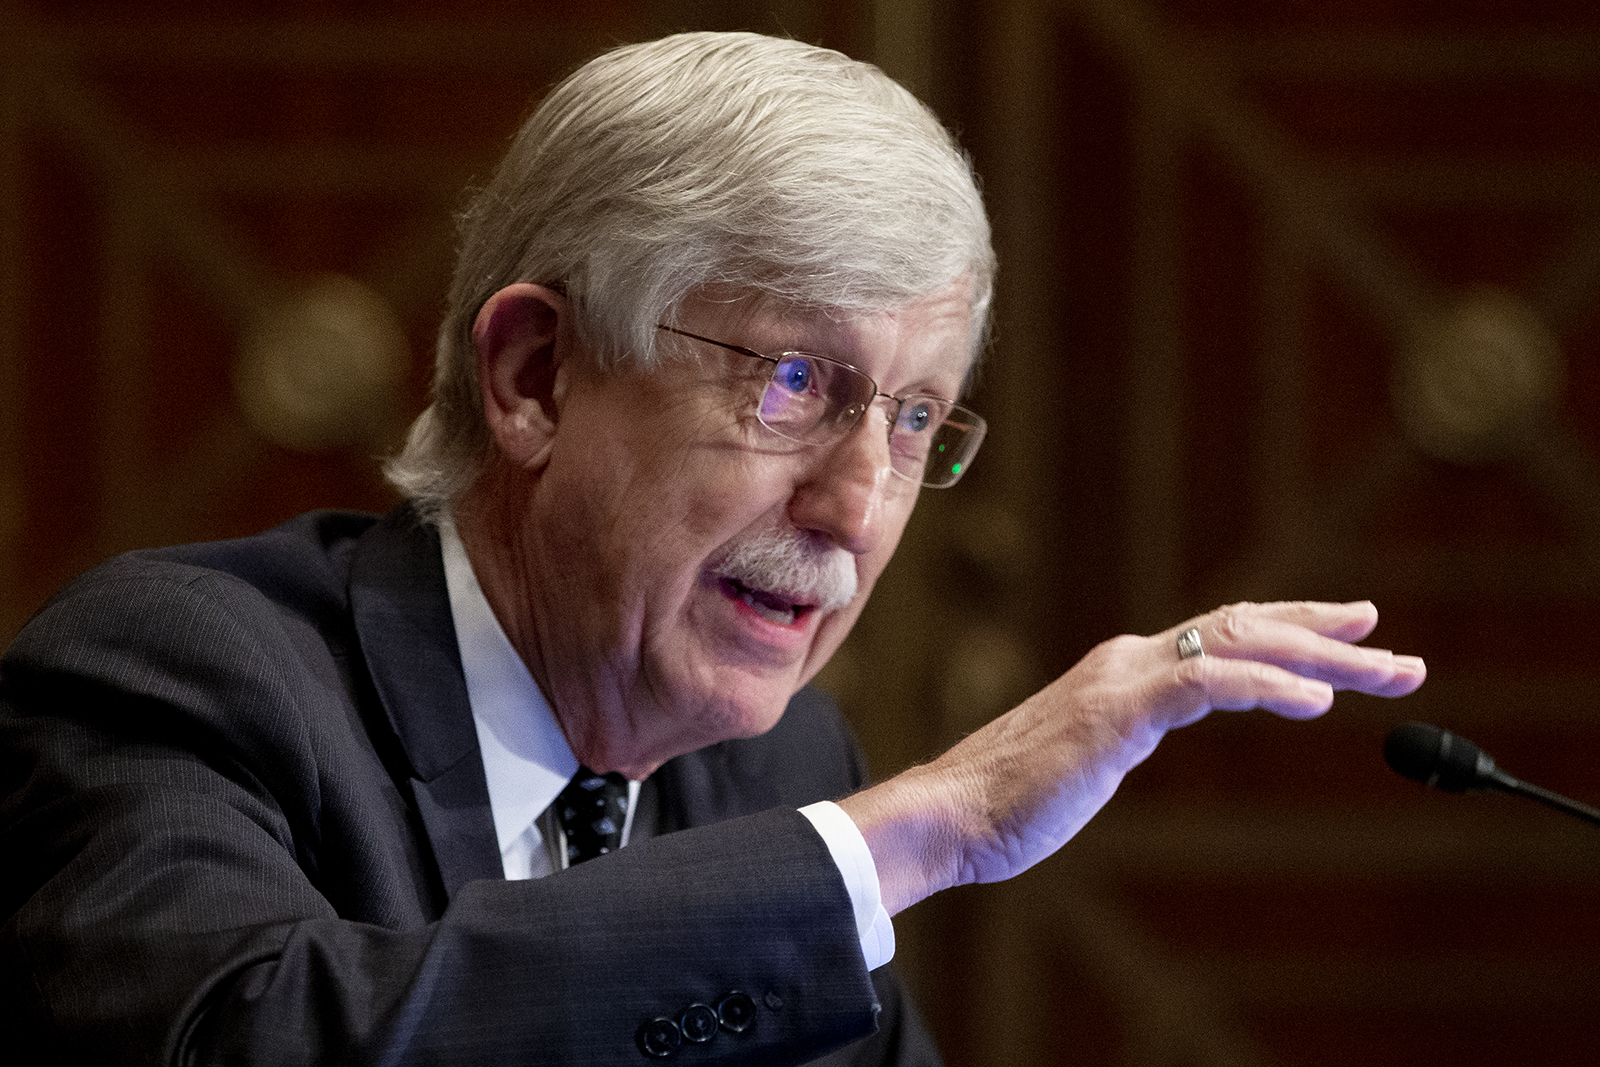 Dr. Francis Collins, director of the National Institutes of Health, appears before a Senate Health, Education, Labor, and Pensions Committee hearing to discuss vaccines and protecting public health during the coronavirus pandemic on Sept. 9, in Washington.